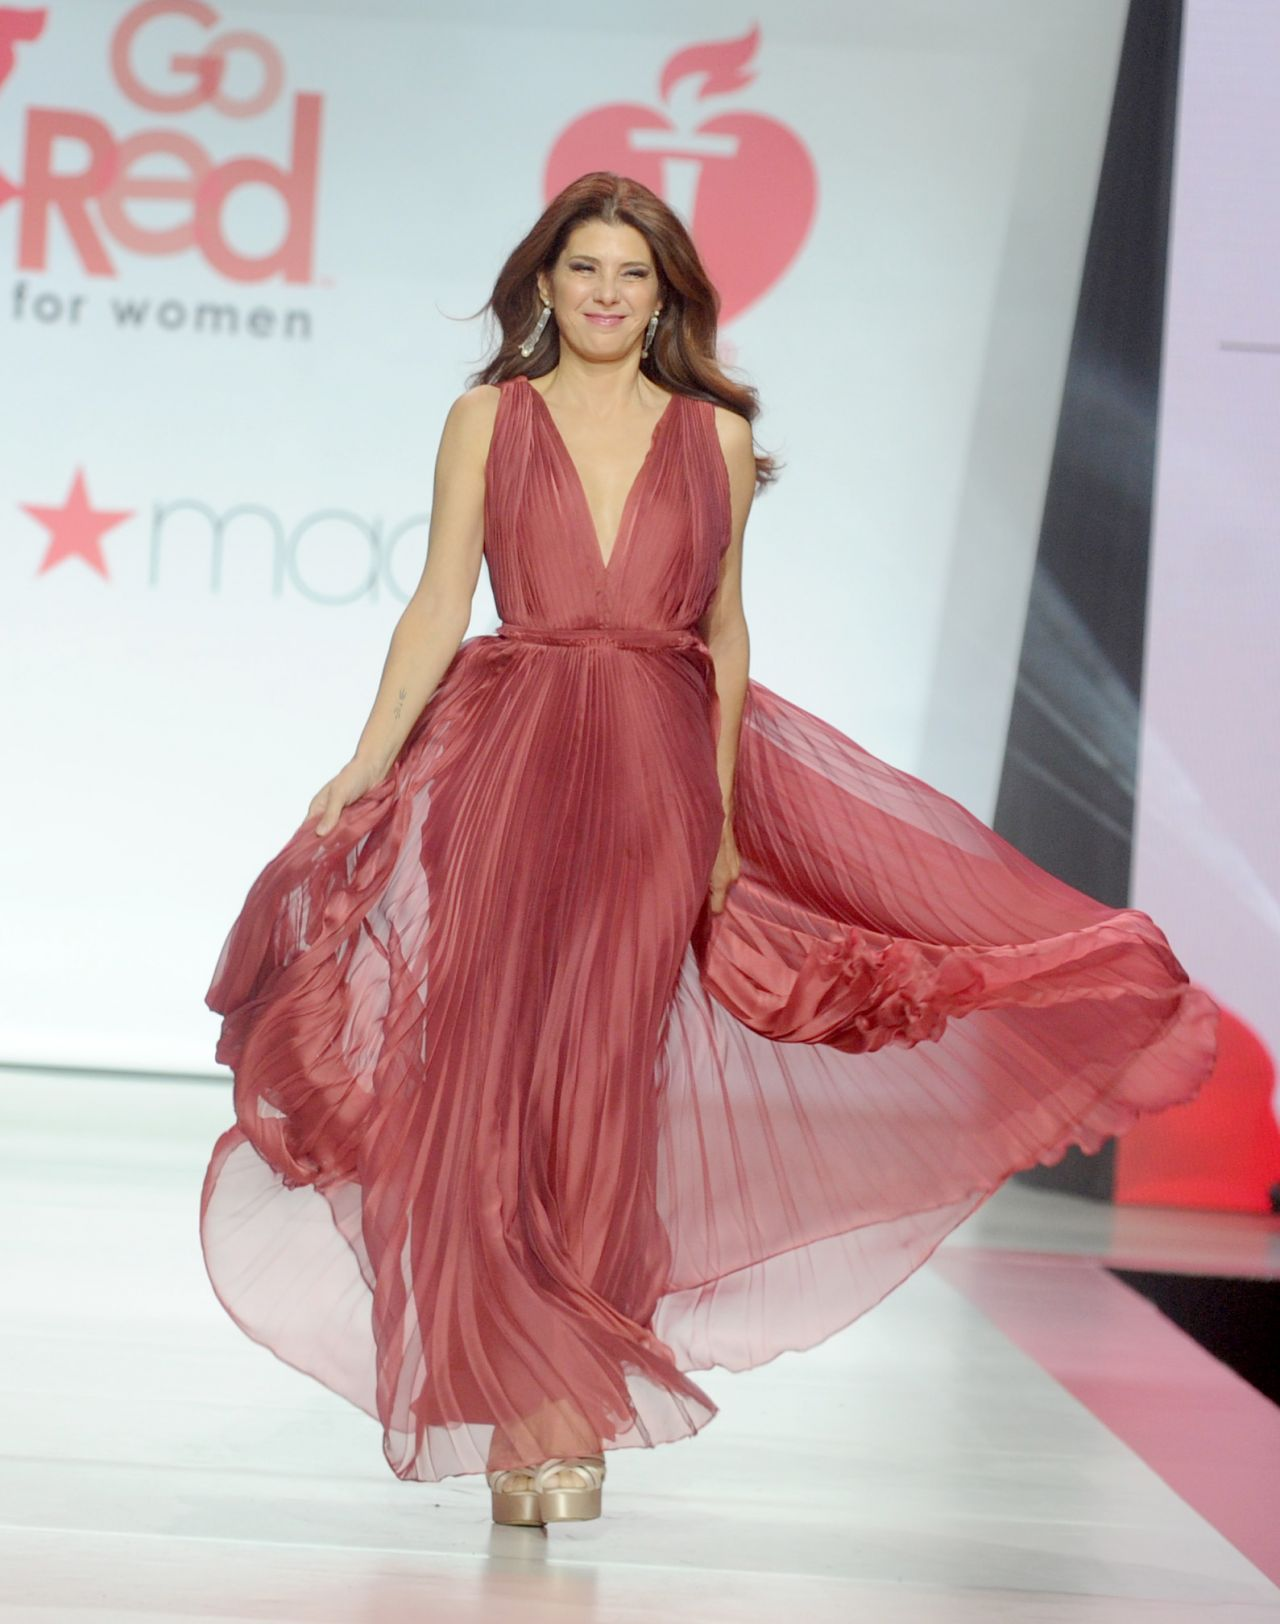 Marisa Tomei Walks Runway for Red Dress 2018 Collection ...